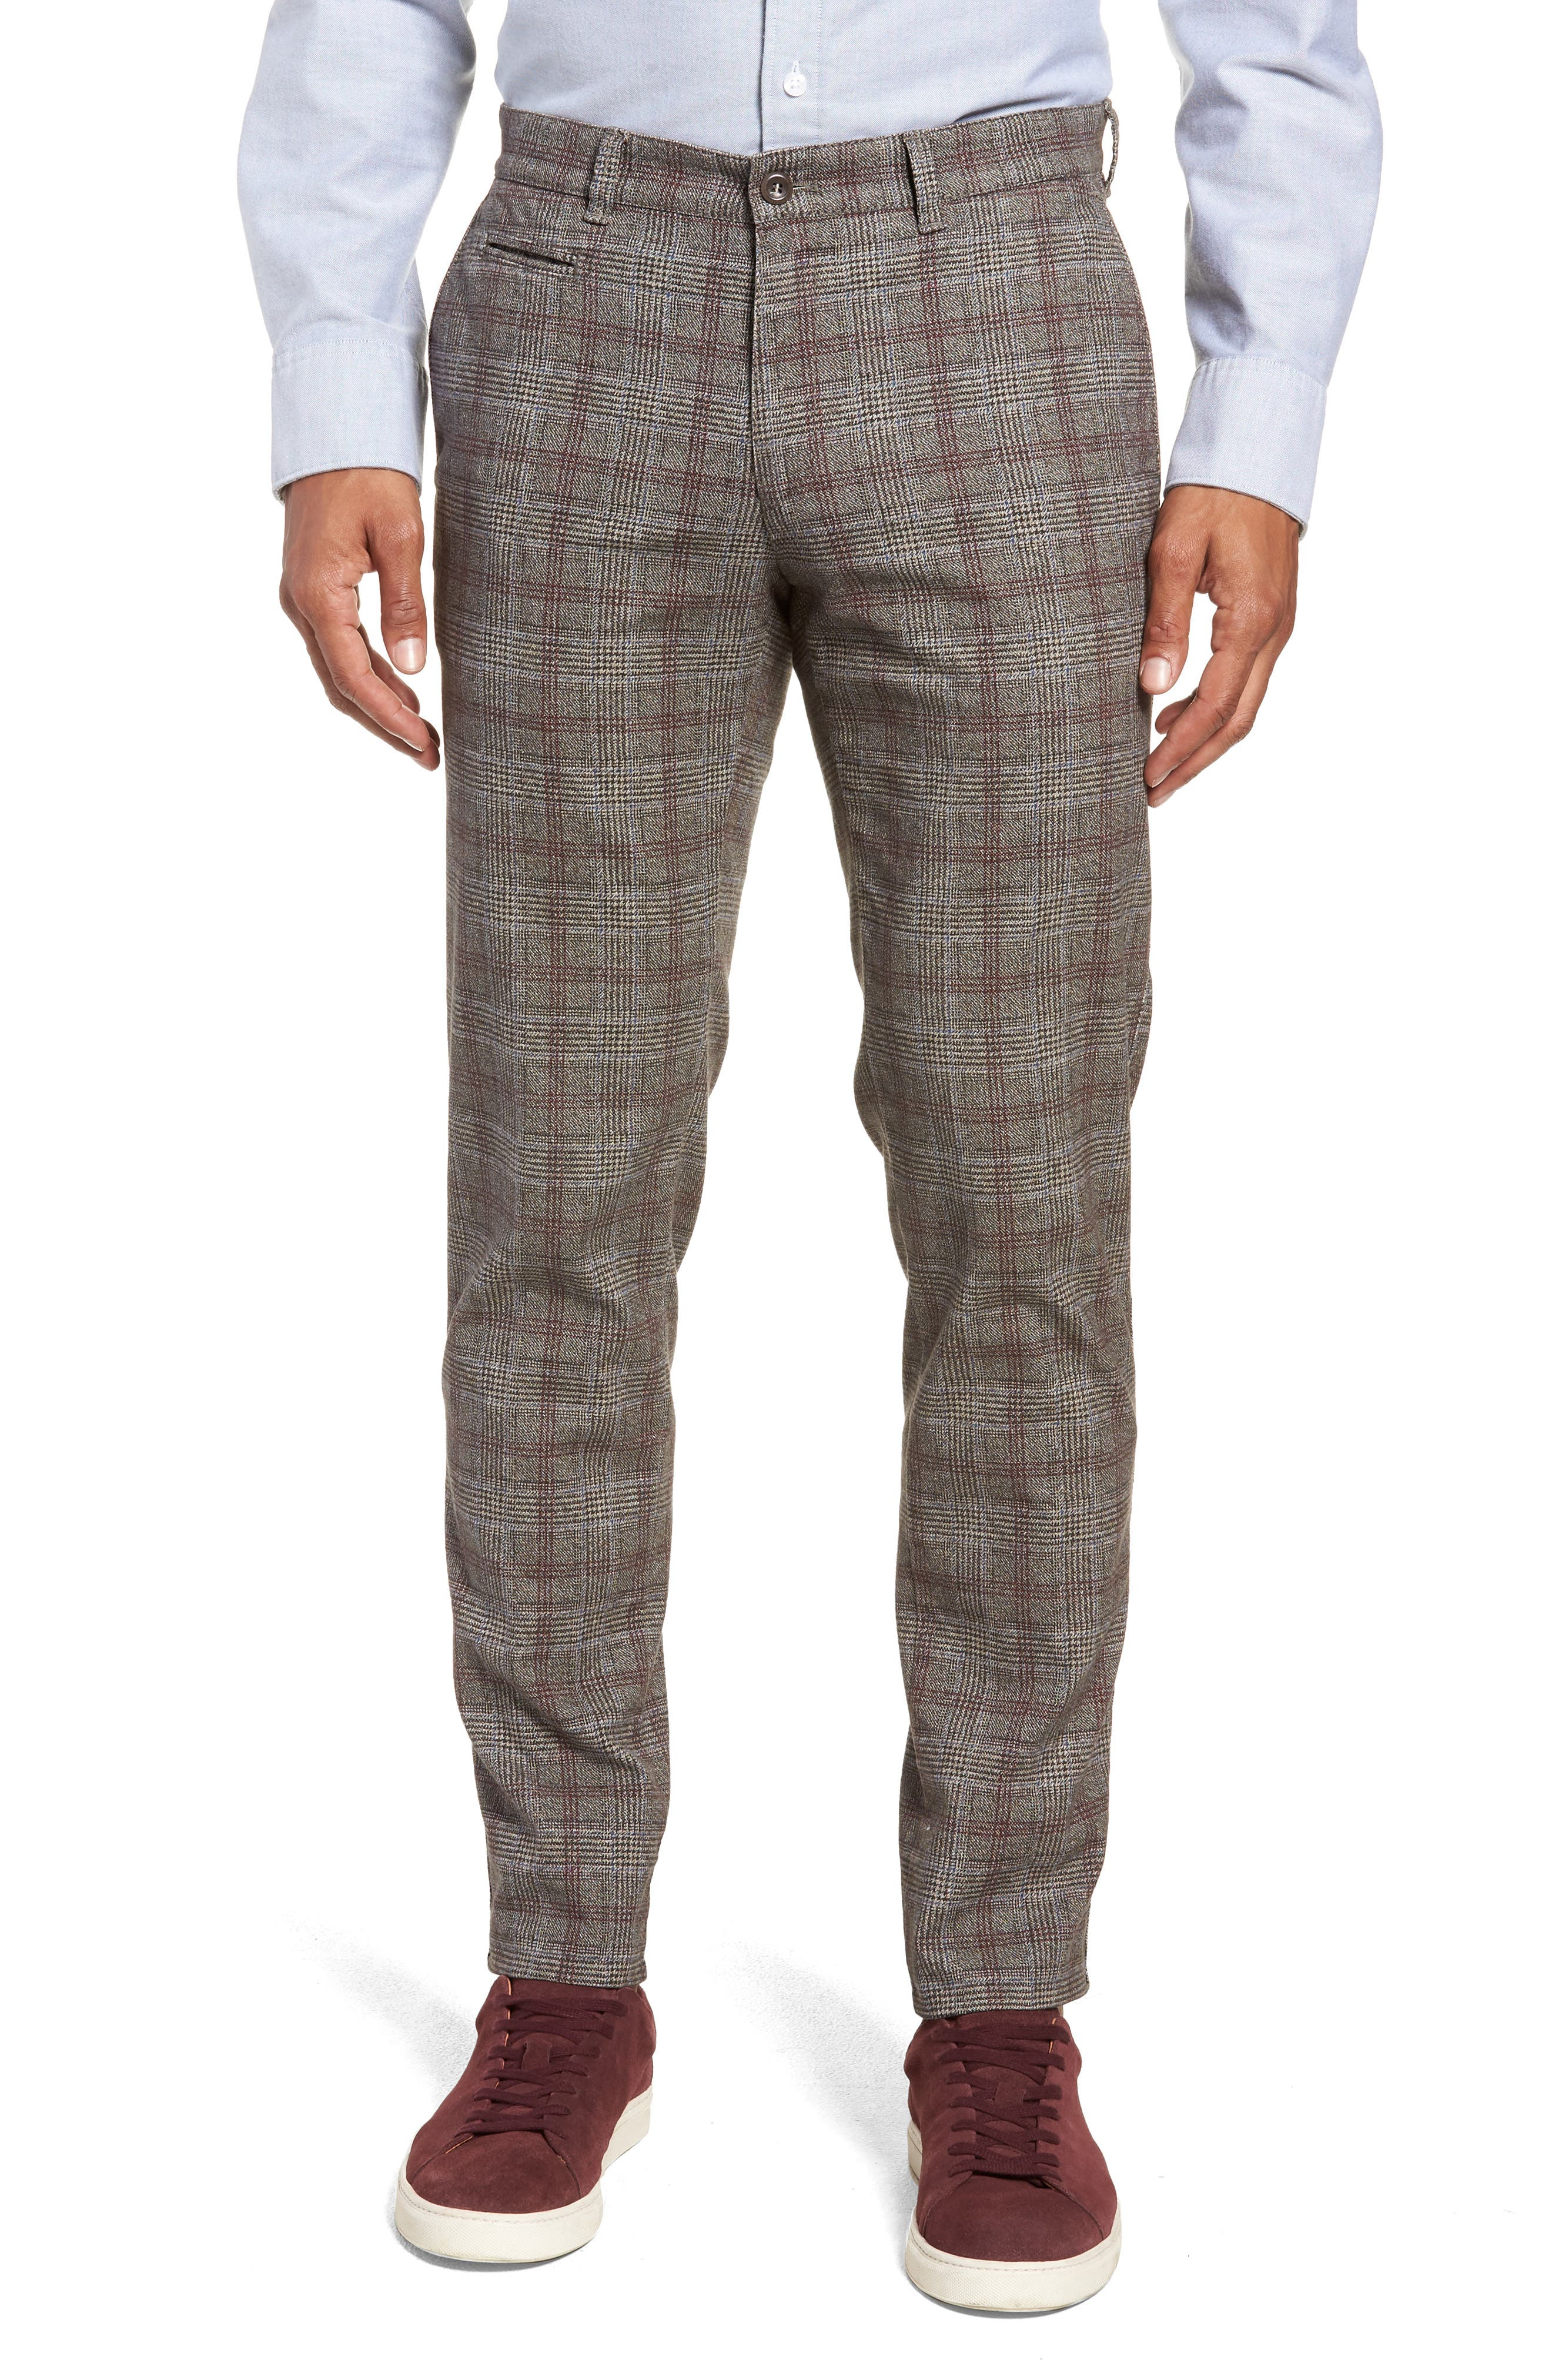 Woolook Slim Fit Check Flat Front Pants,                             Main thumbnail 1, color,                             BEIGE